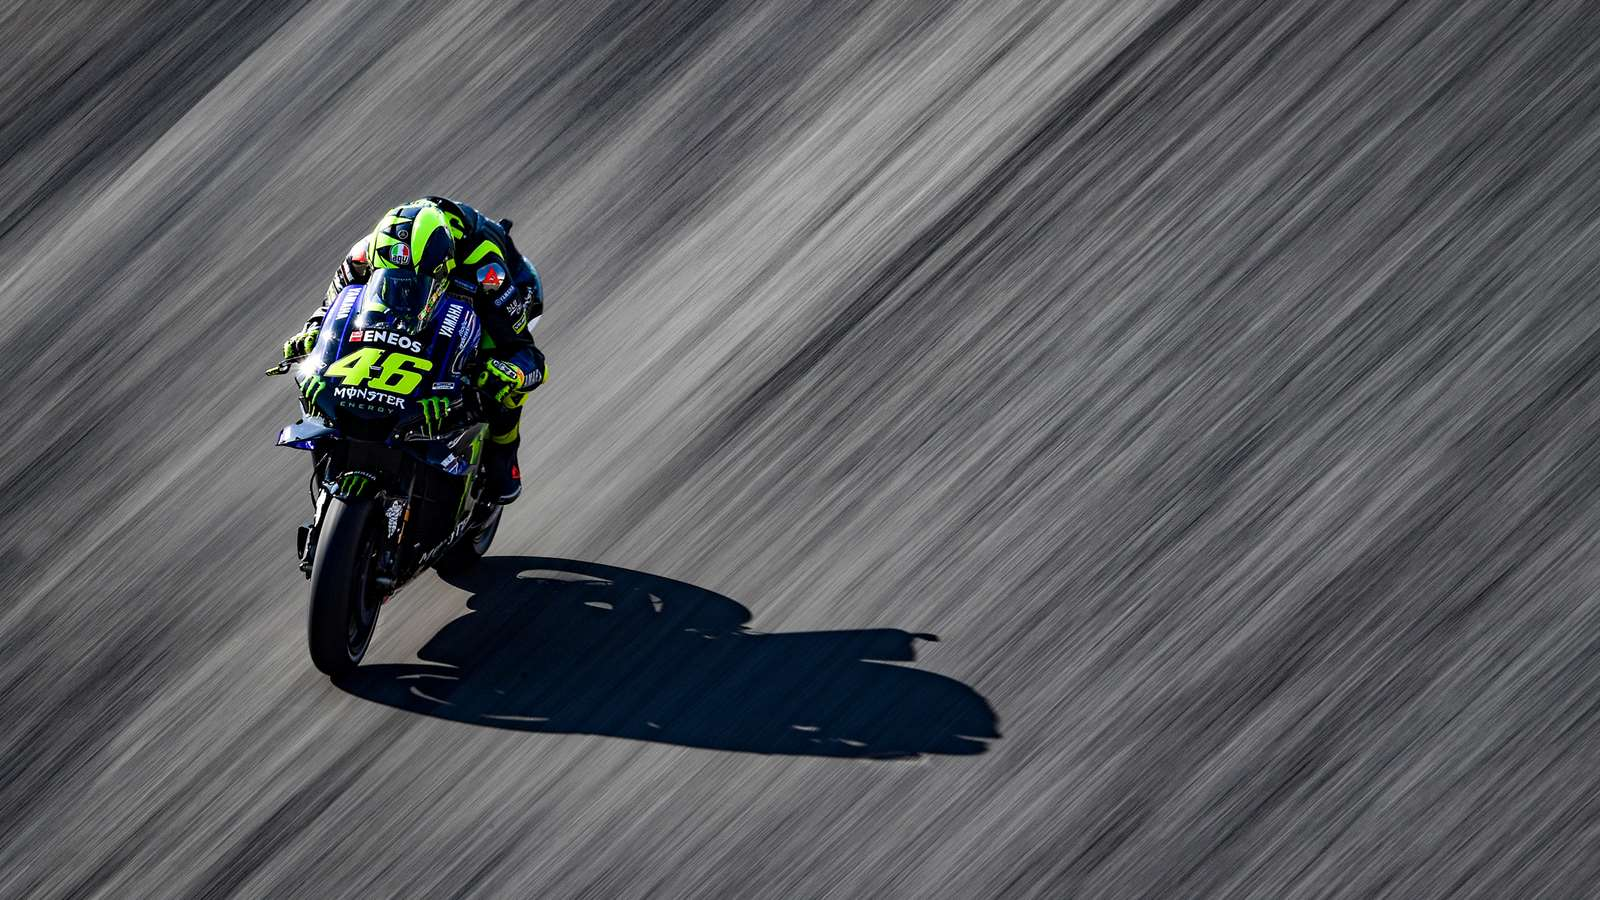 Will Valentino Rossi Ever Win Another Motogp Title